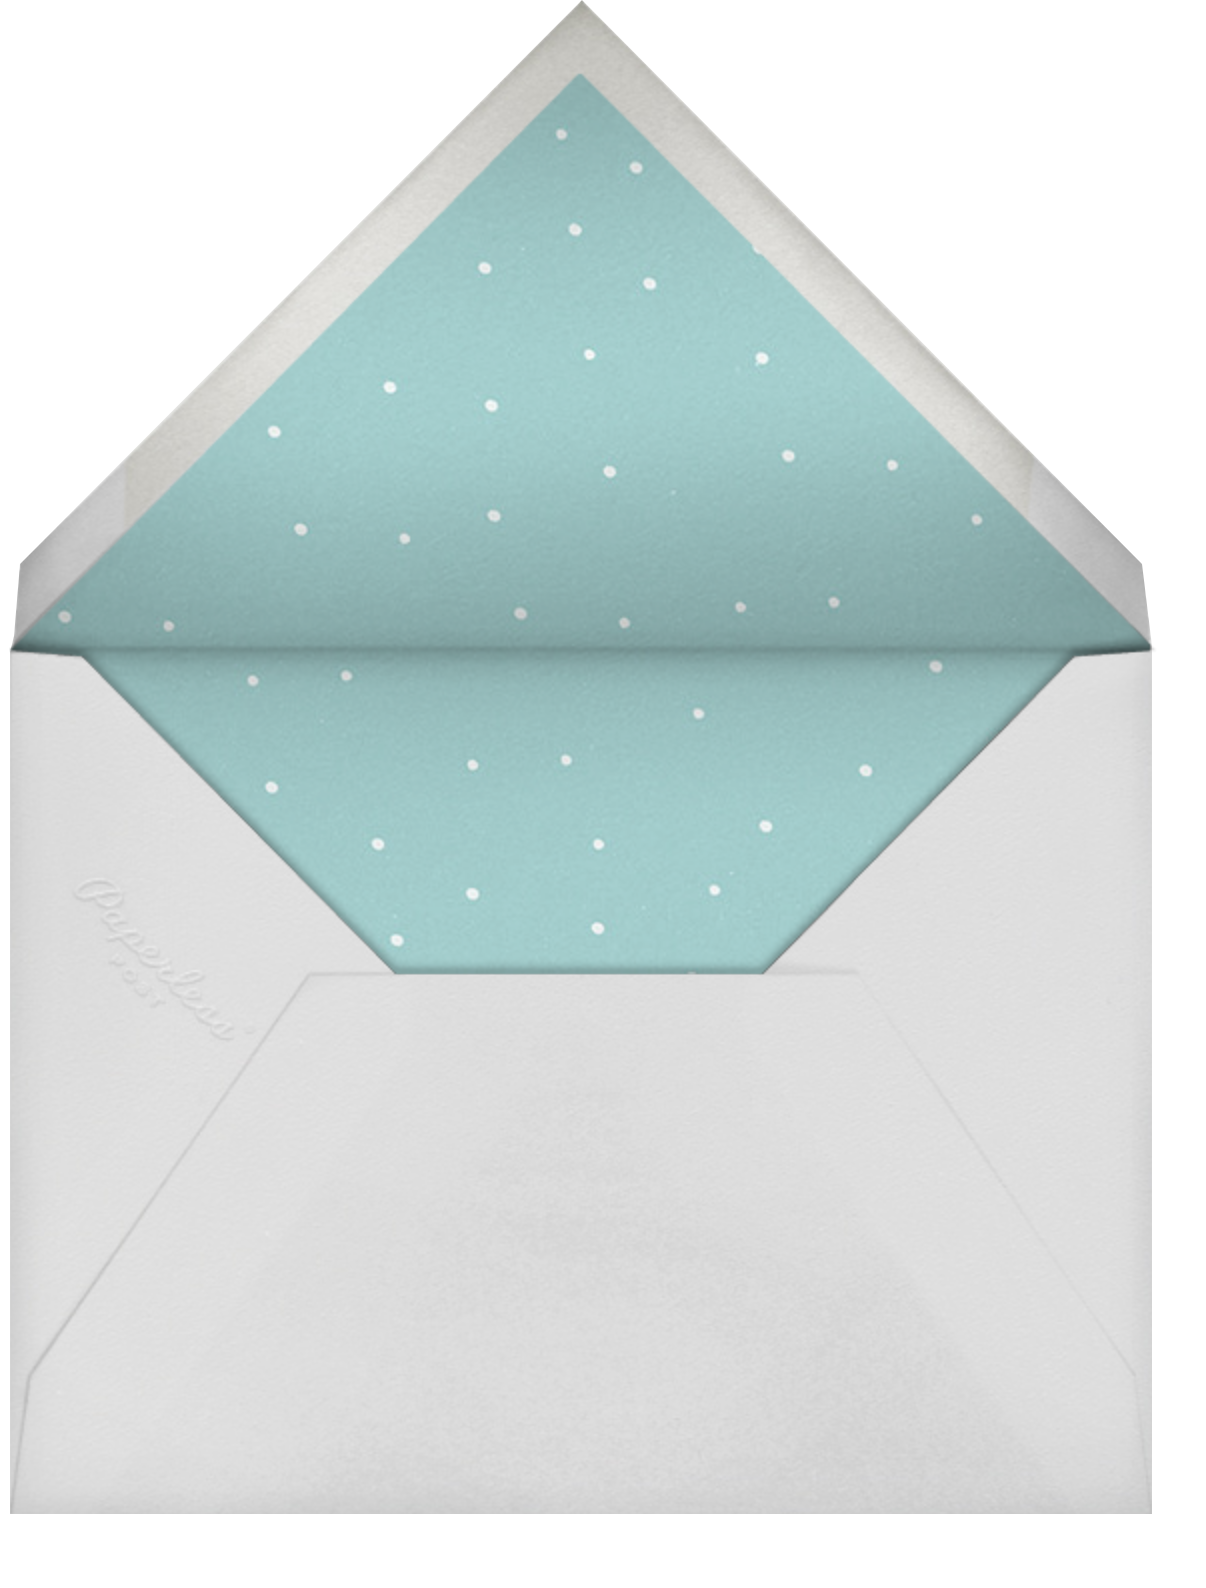 Cornerstone - Ivory - Paperless Post - Wedding - envelope back